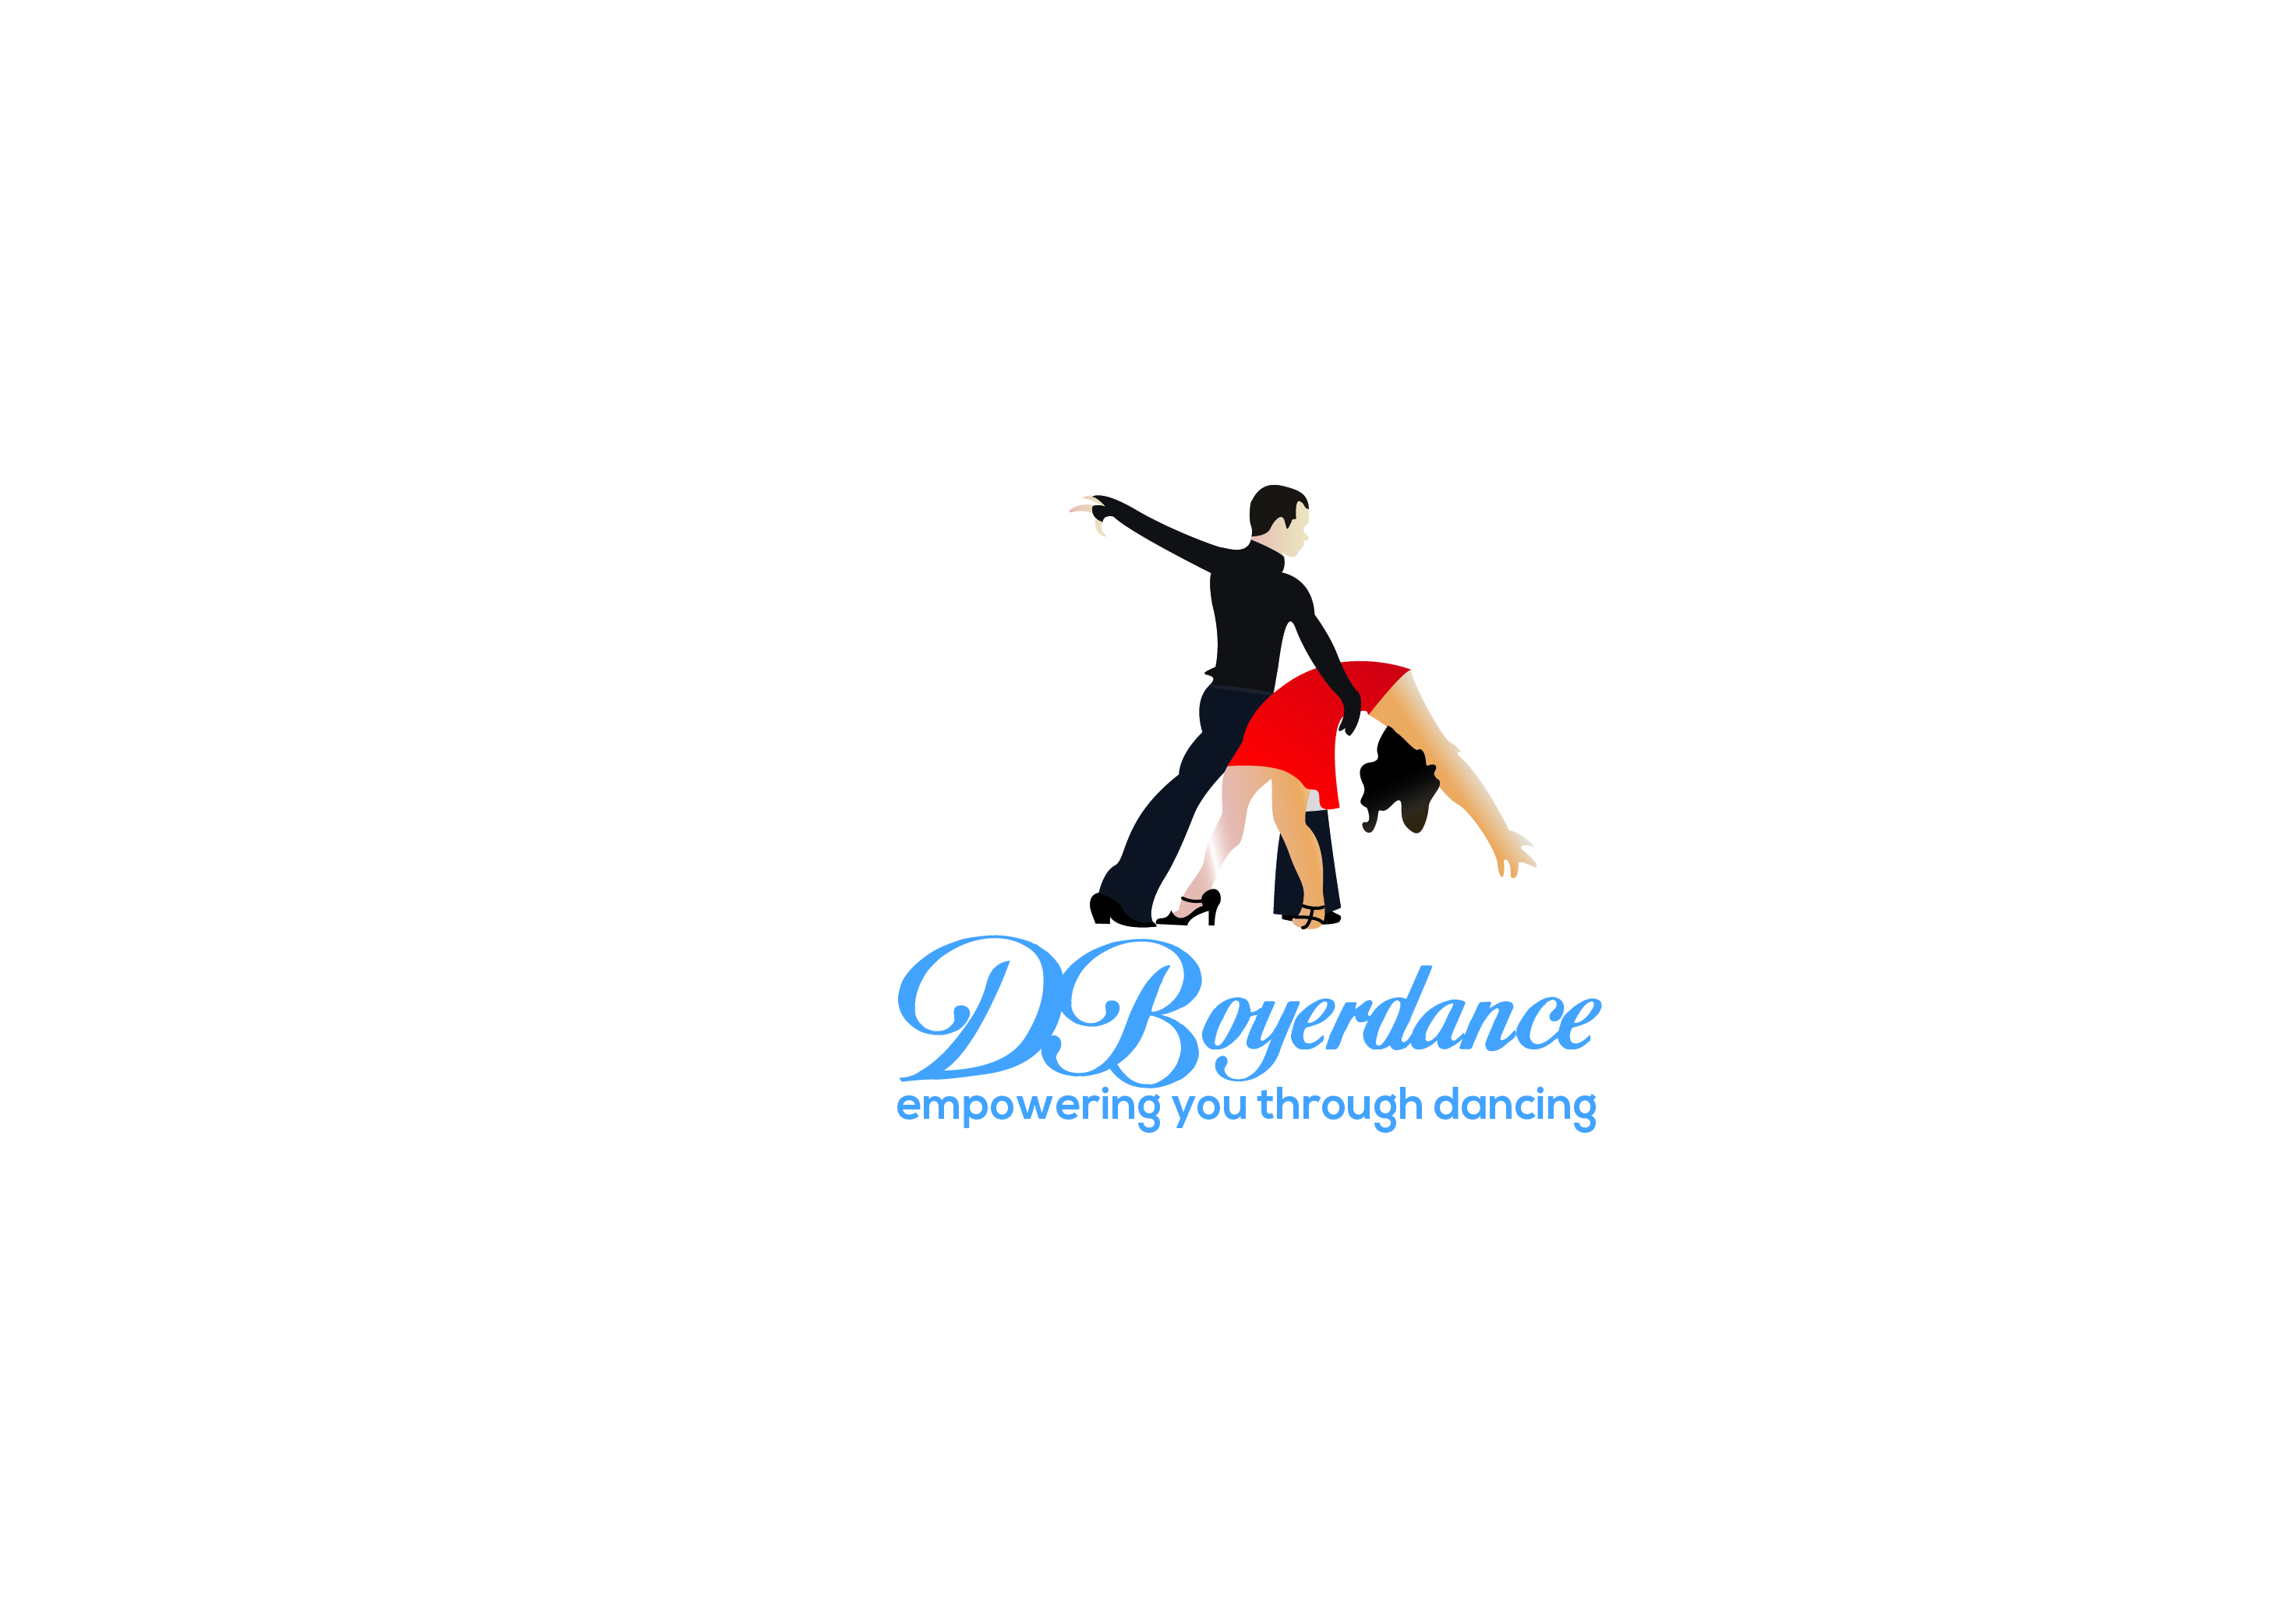 Wedding First Dance Lessons & Ballroom dance Lessons With Dboyerdance In Vancouver!